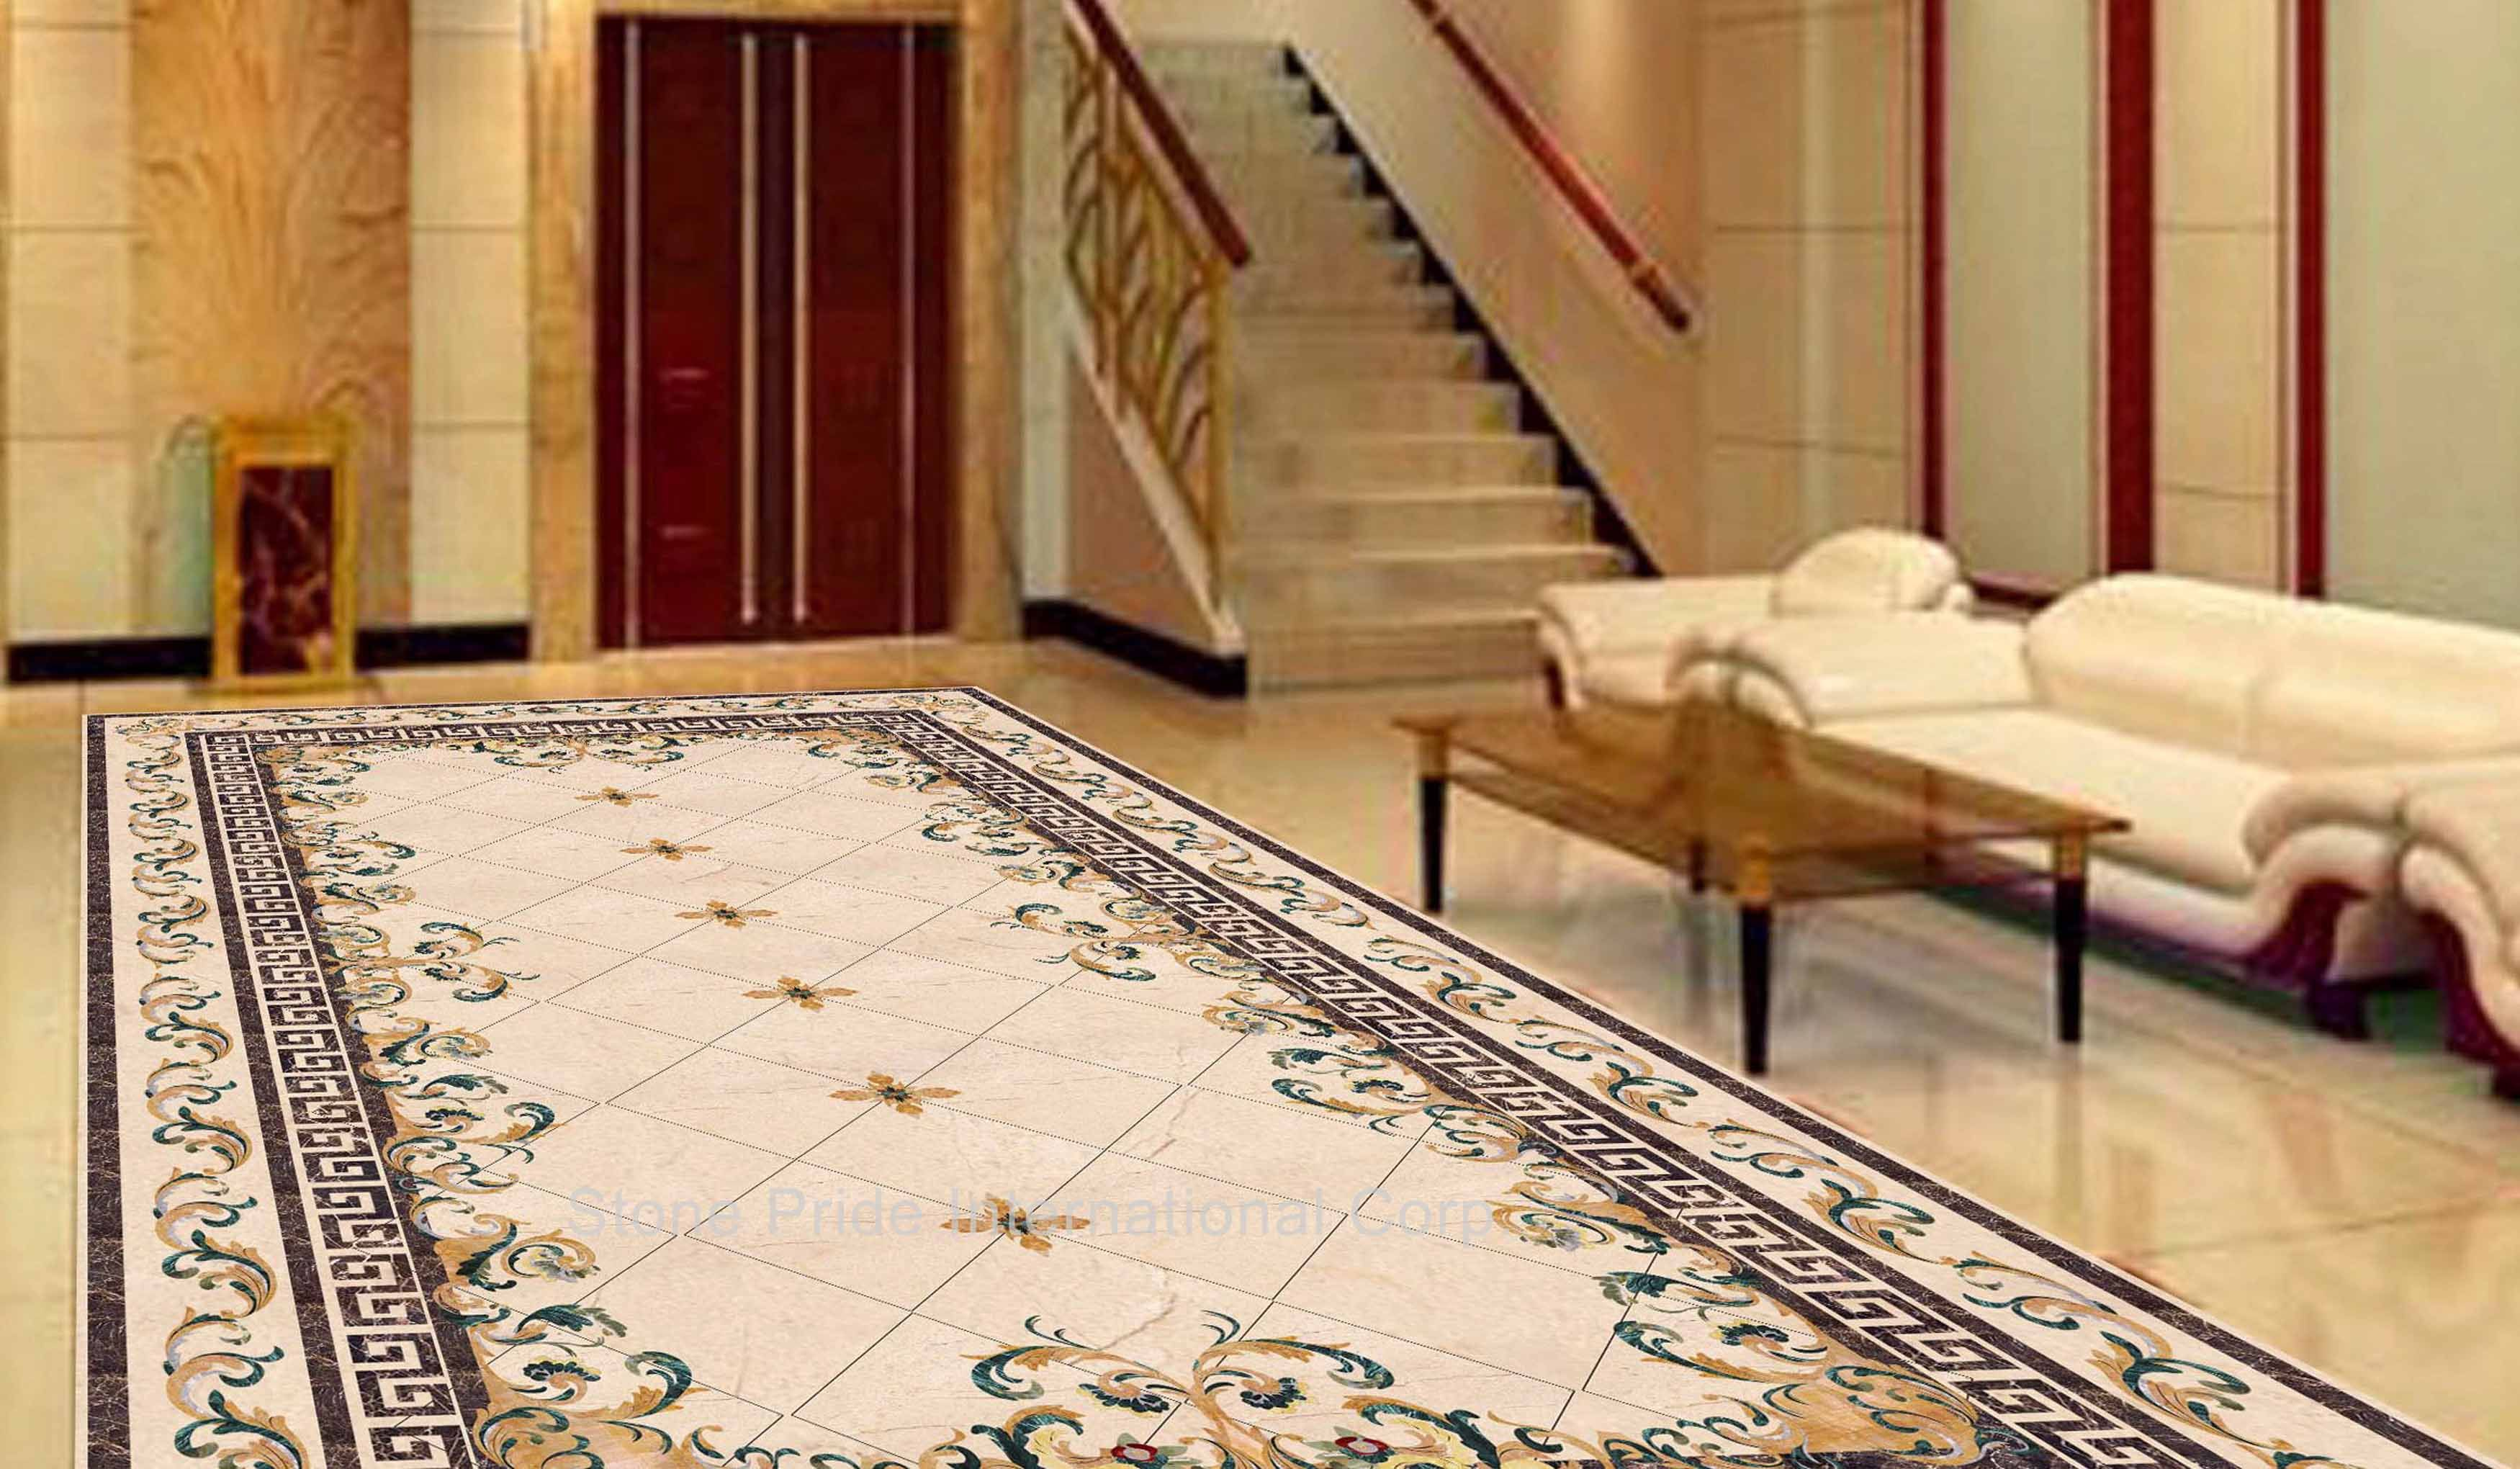 Floor design floor design floor design ideas floor for Floor tiles border design